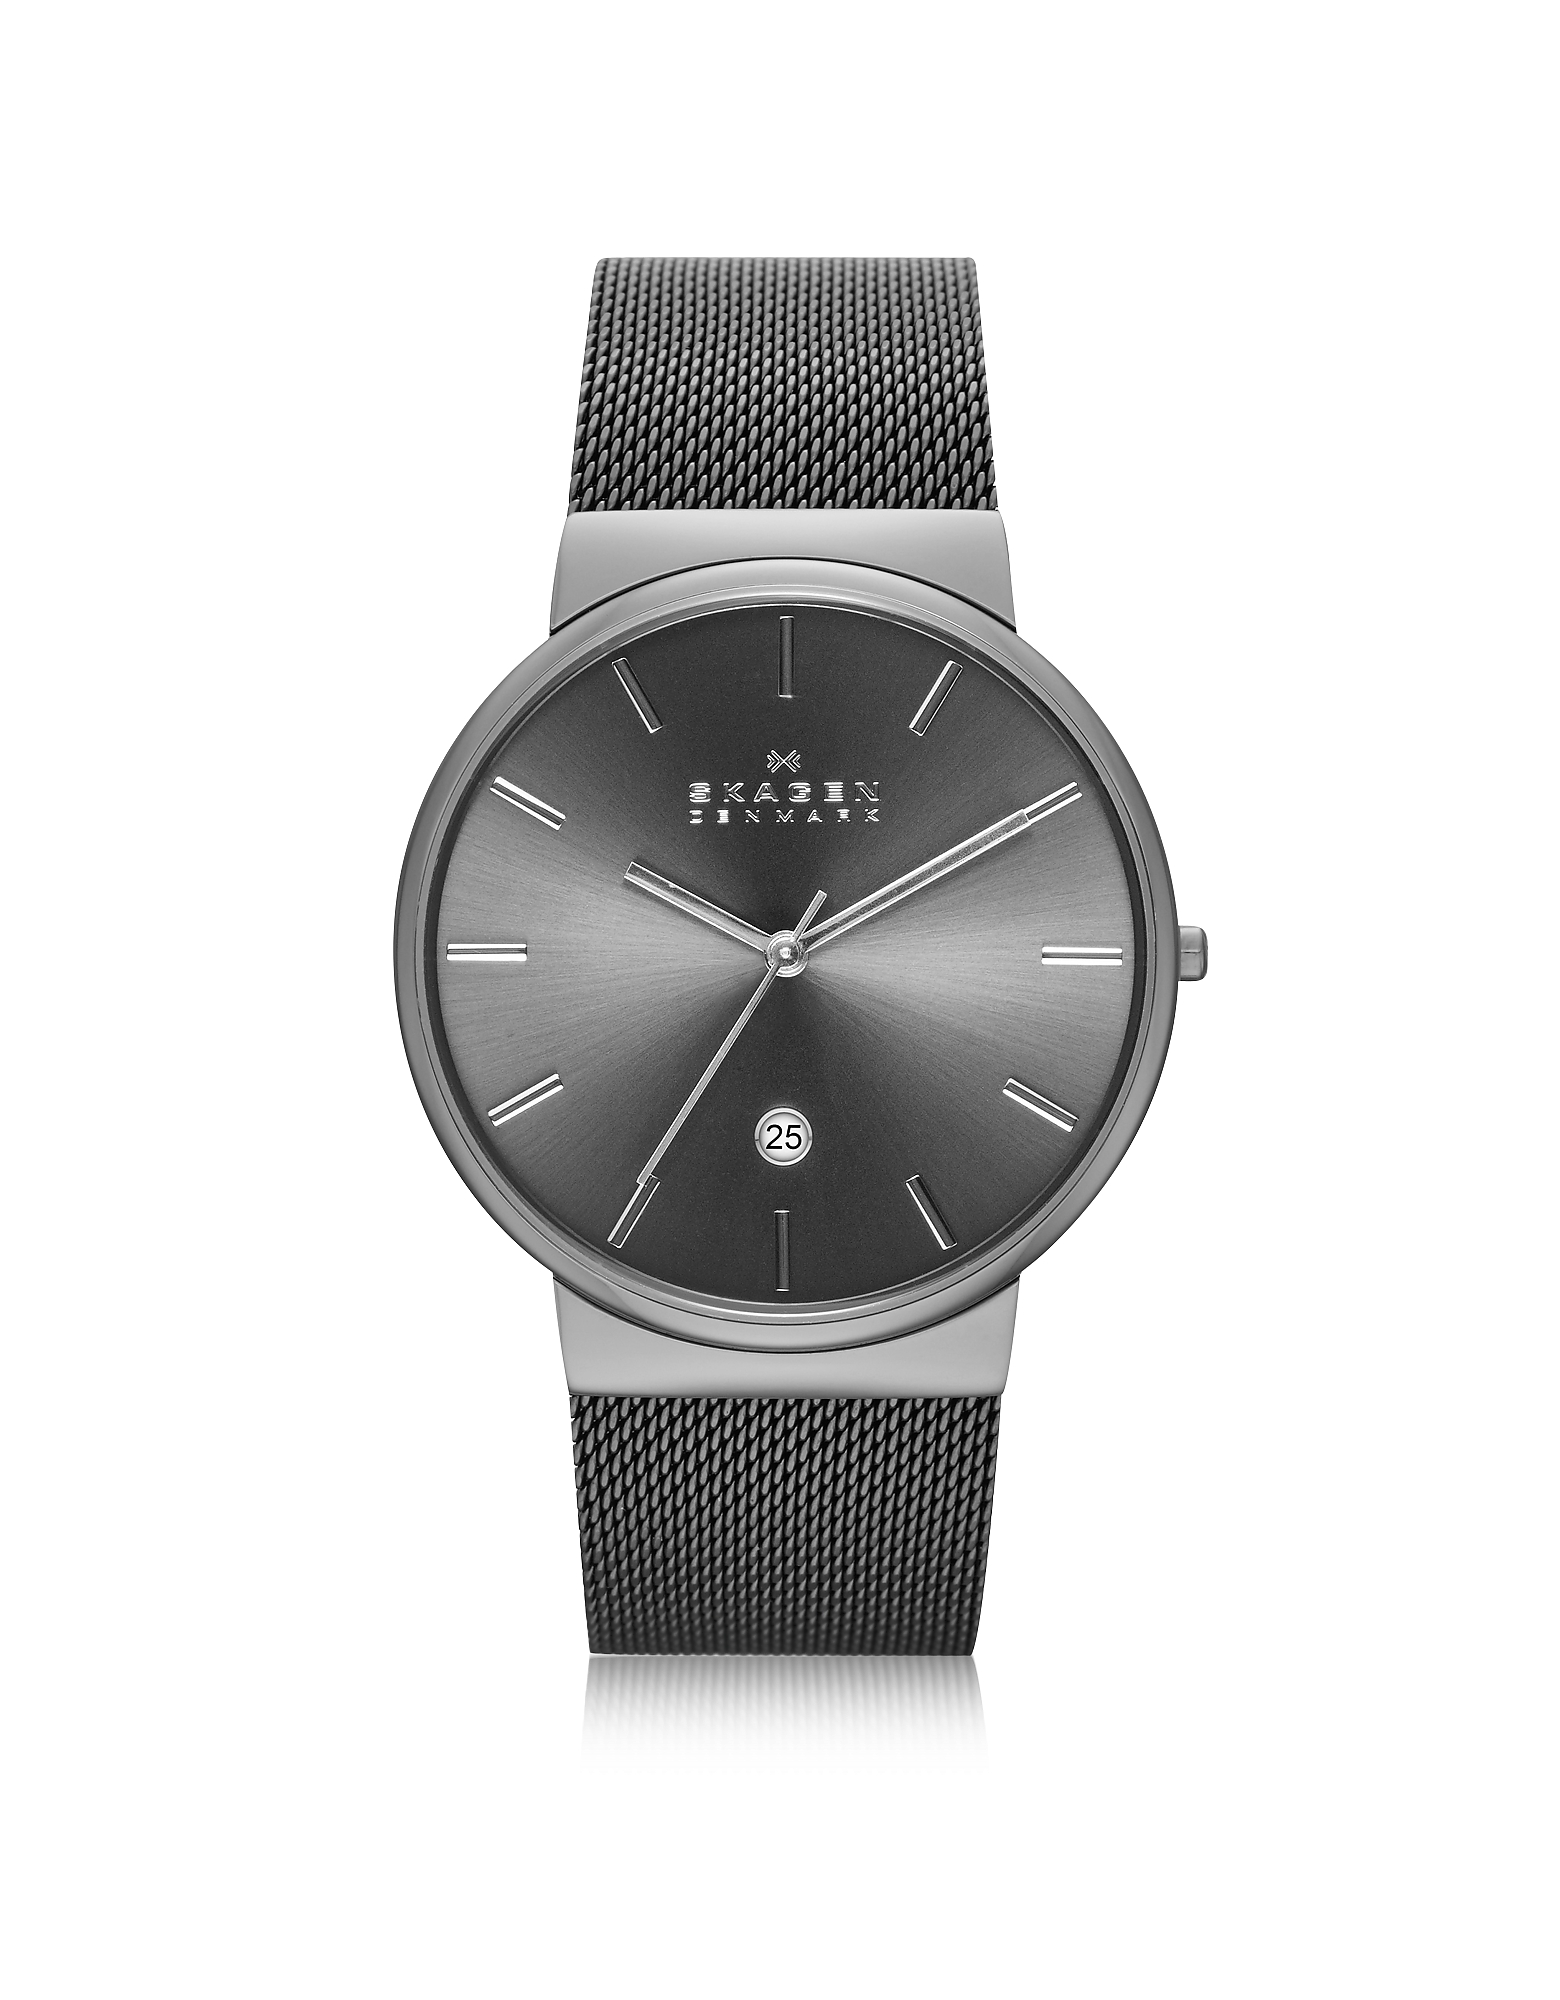 Skagen Men's Watches, Ancher Black Stainless Steel Case Men's Watch w/Mesh Strap